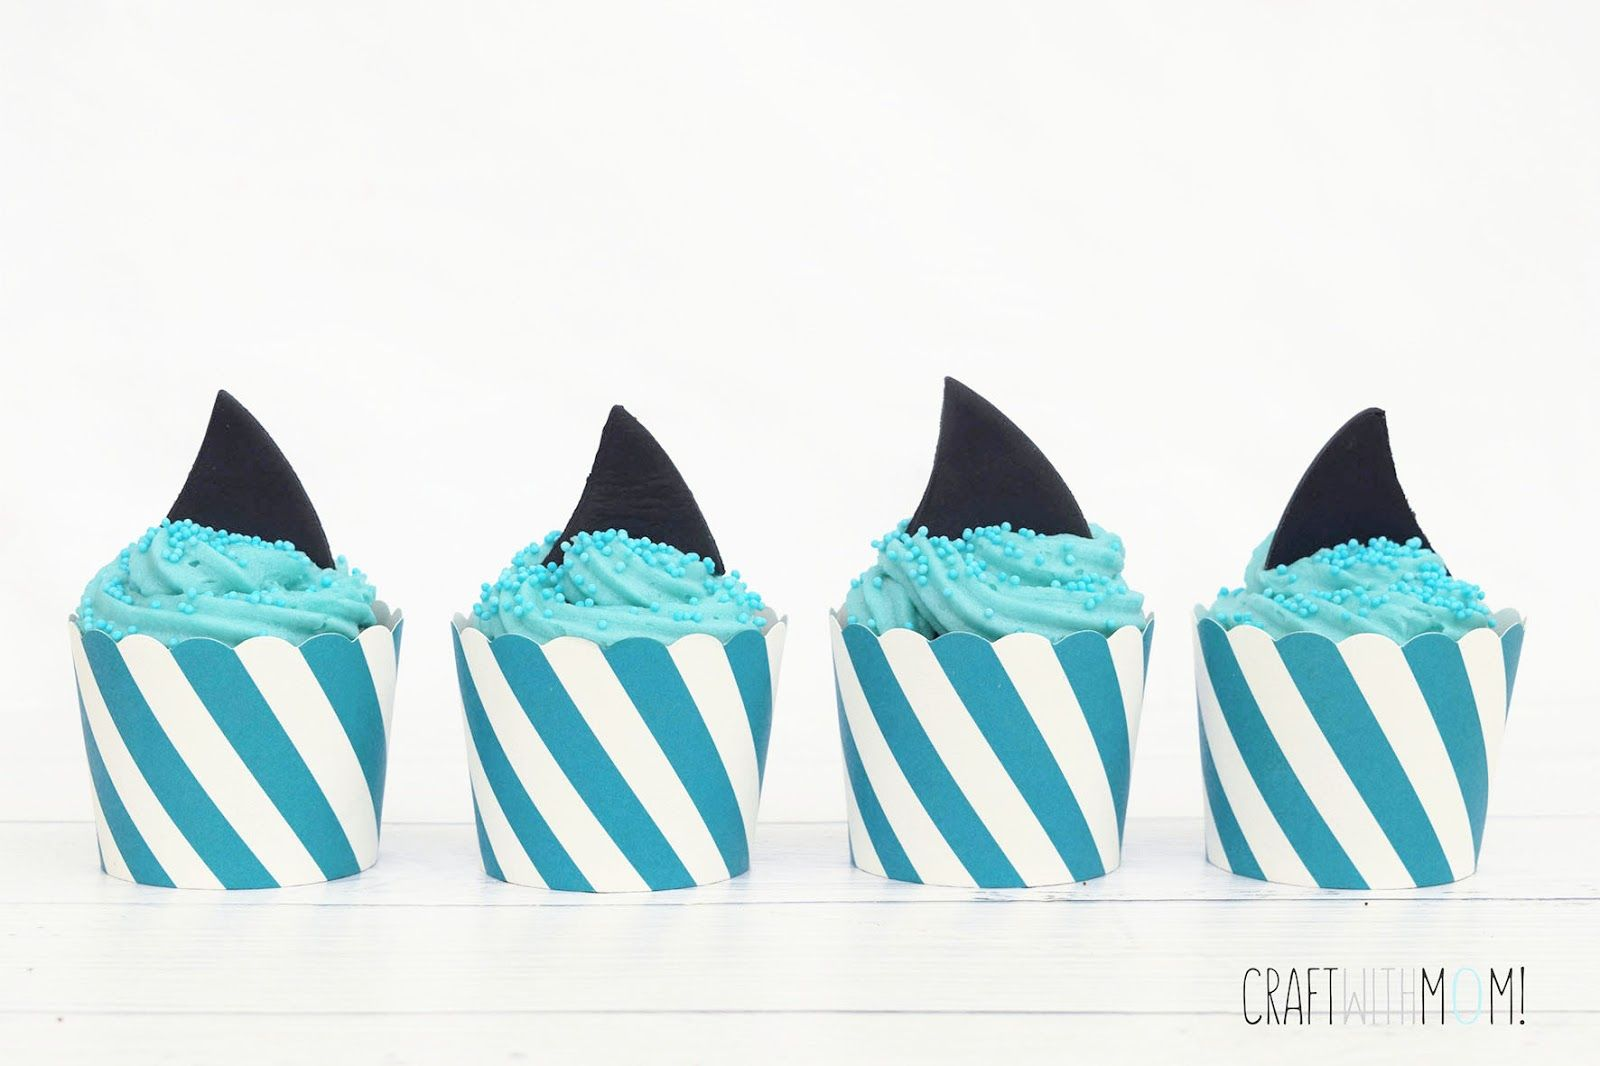 CraftWithMom: SHARK ATTACK BROWNIE CUPCAKES WITH VANILA FROSTING